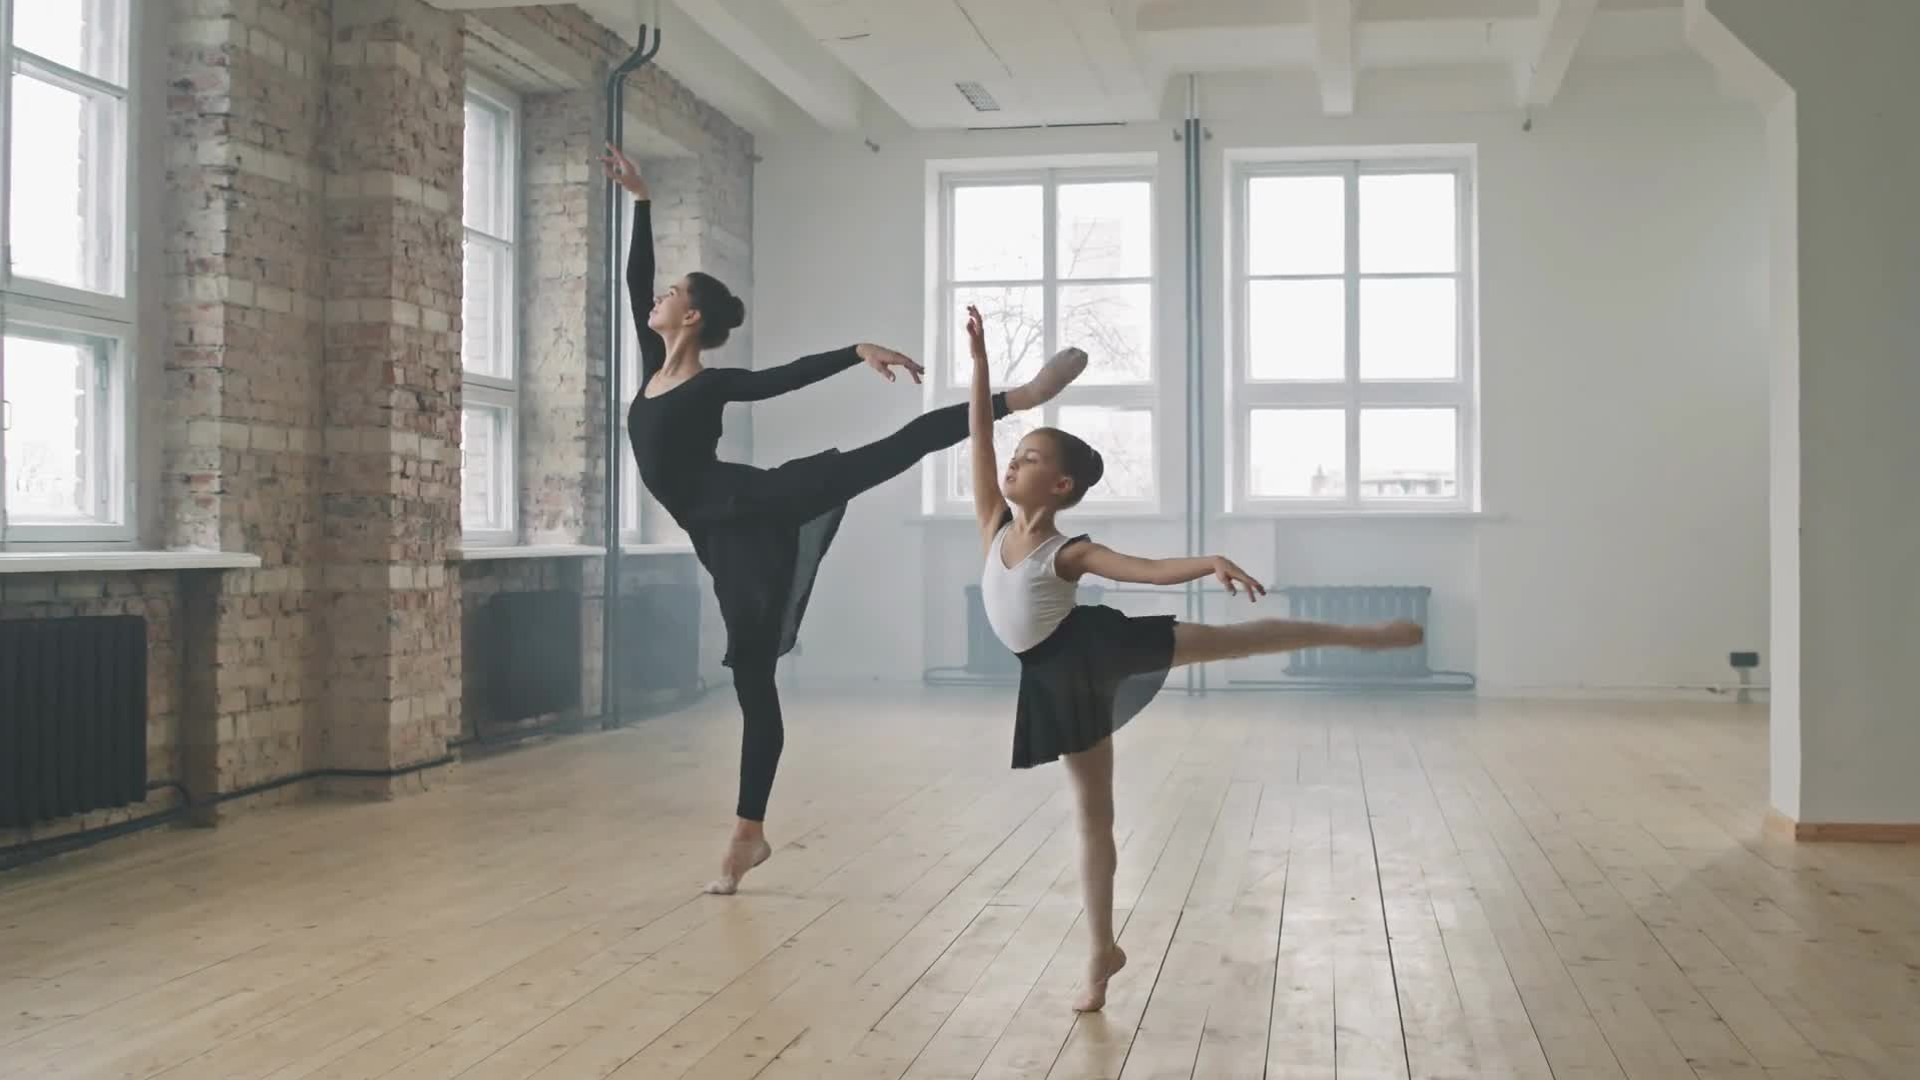 A girl and a woman dancing ballet together in a class